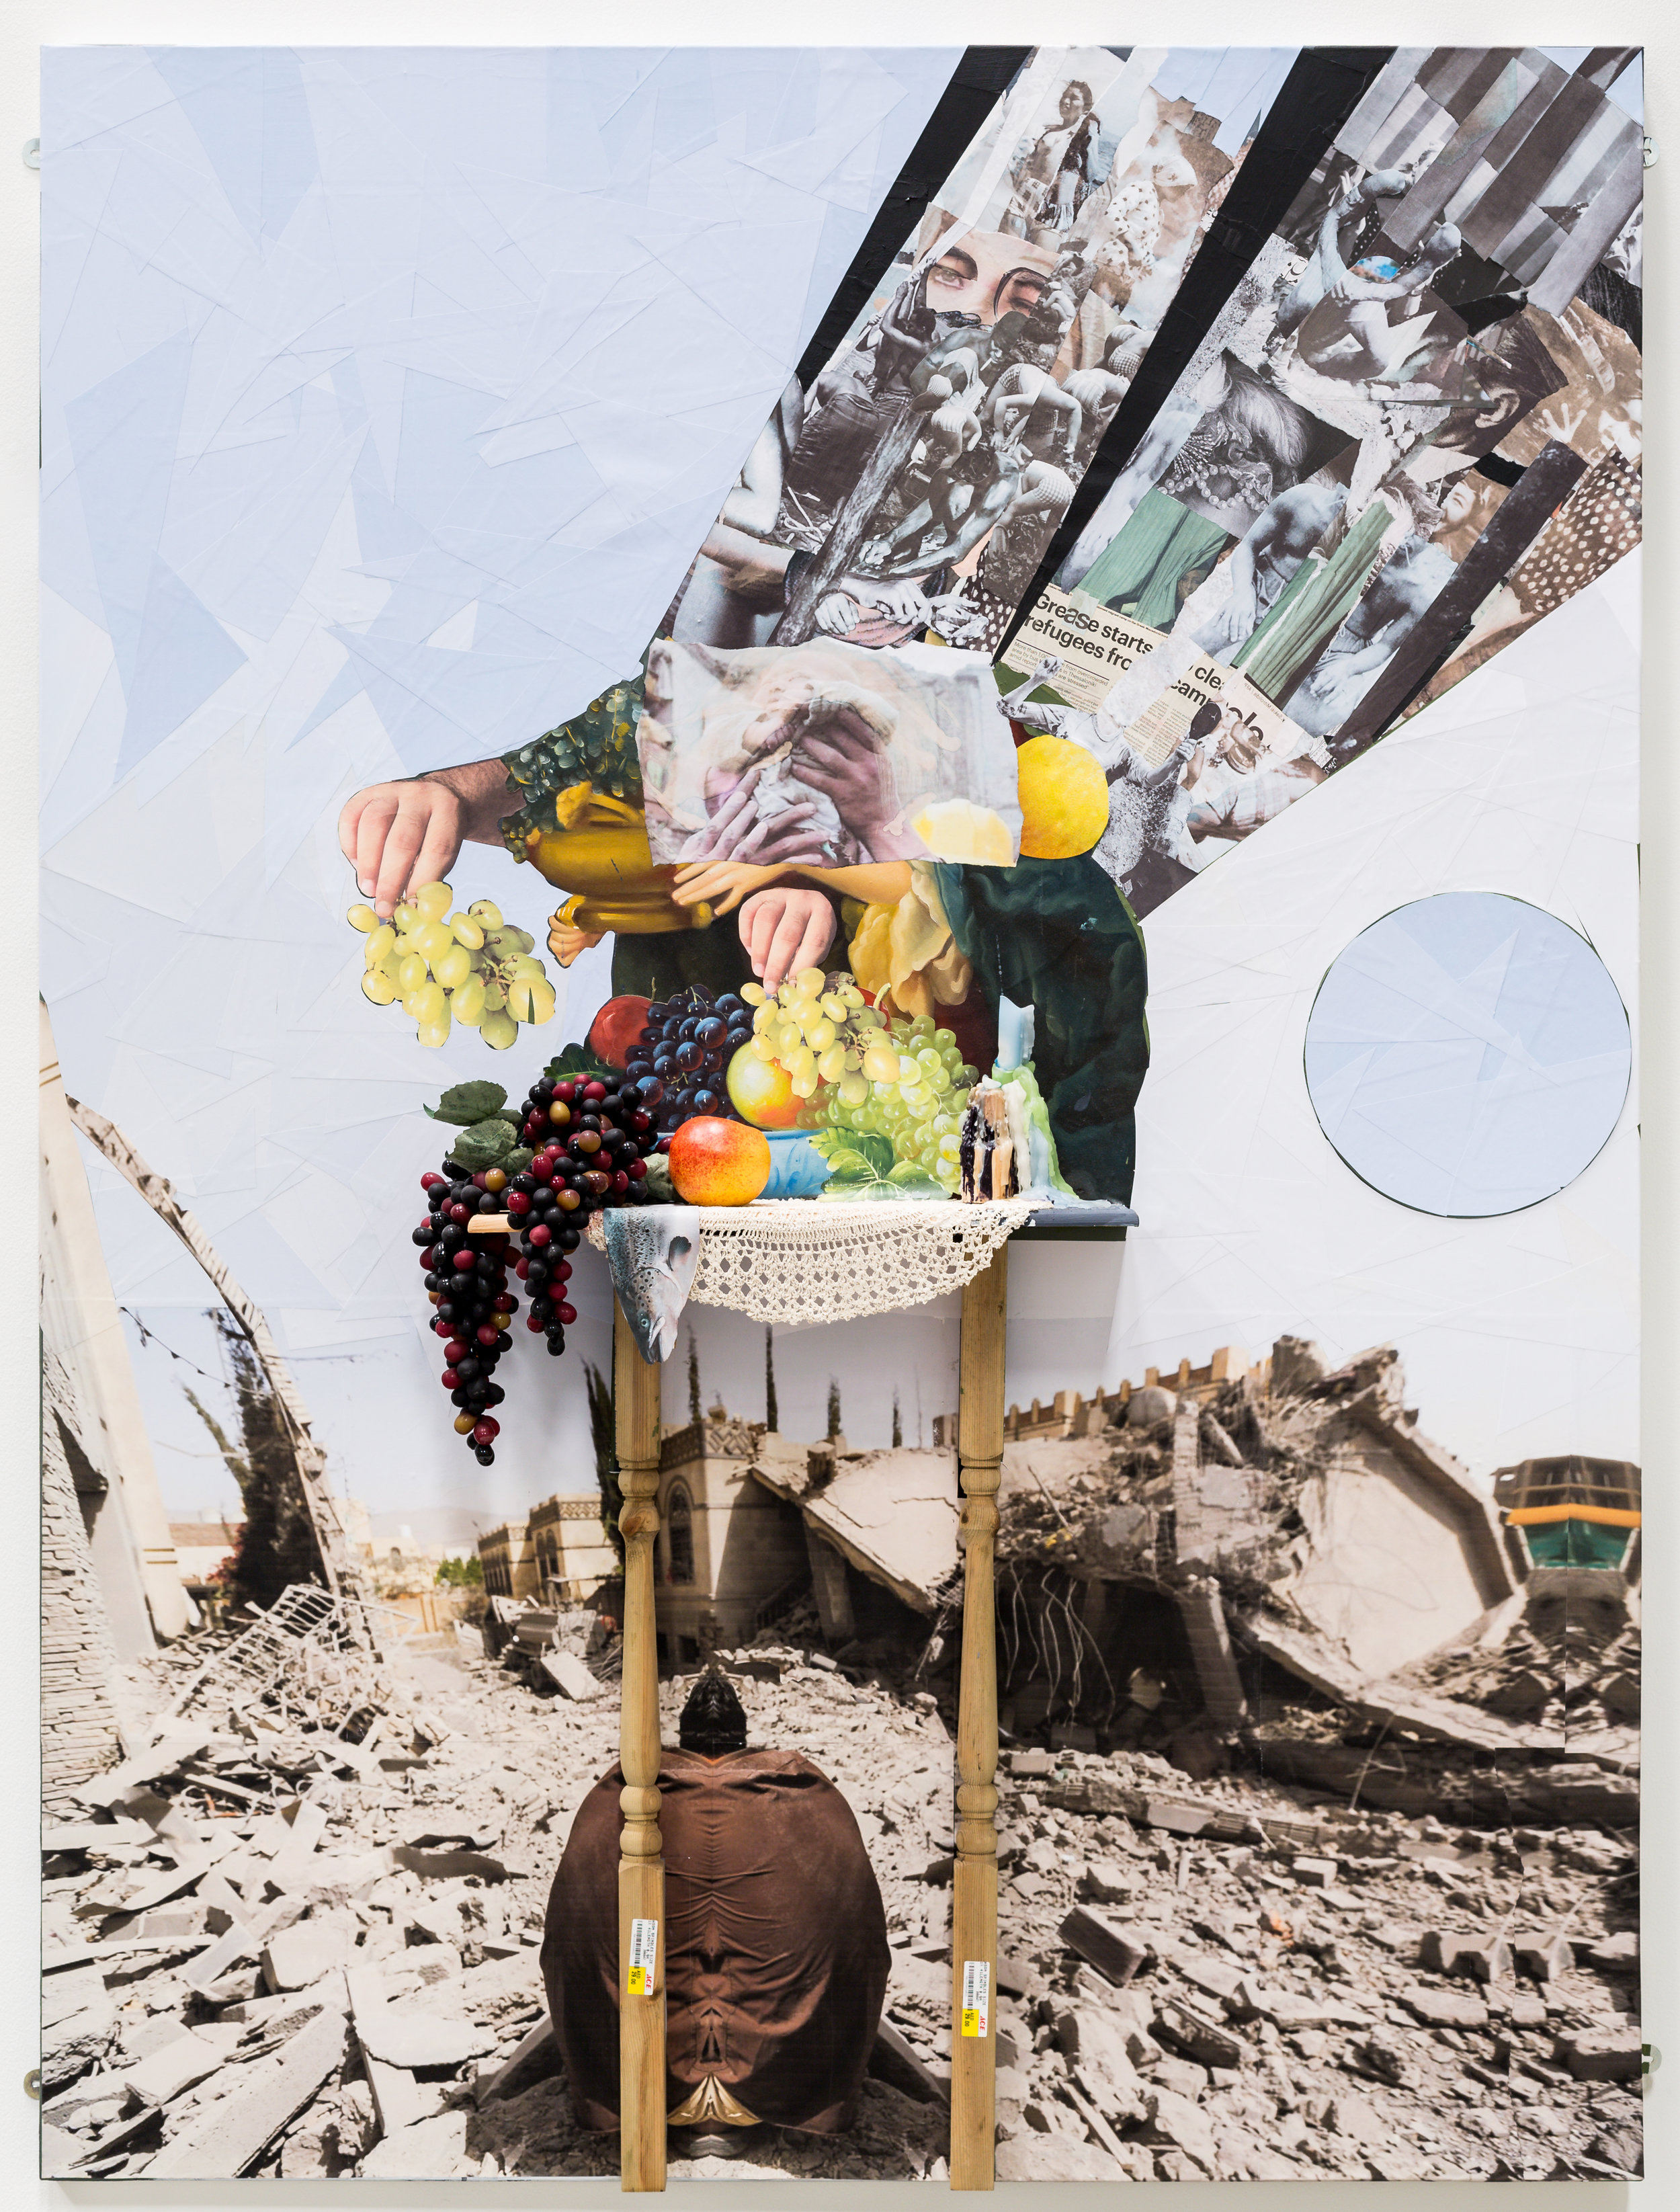 Ramin Haerizadeh.We Choose to Go to the Moon,2009-17.Collage, acrylic wooden console table, crochet, fake fruits, oil painting and candle on canvas.200 x 150 cm. Courtesy of the artist and Gallery Isabelle Van Den Eynde